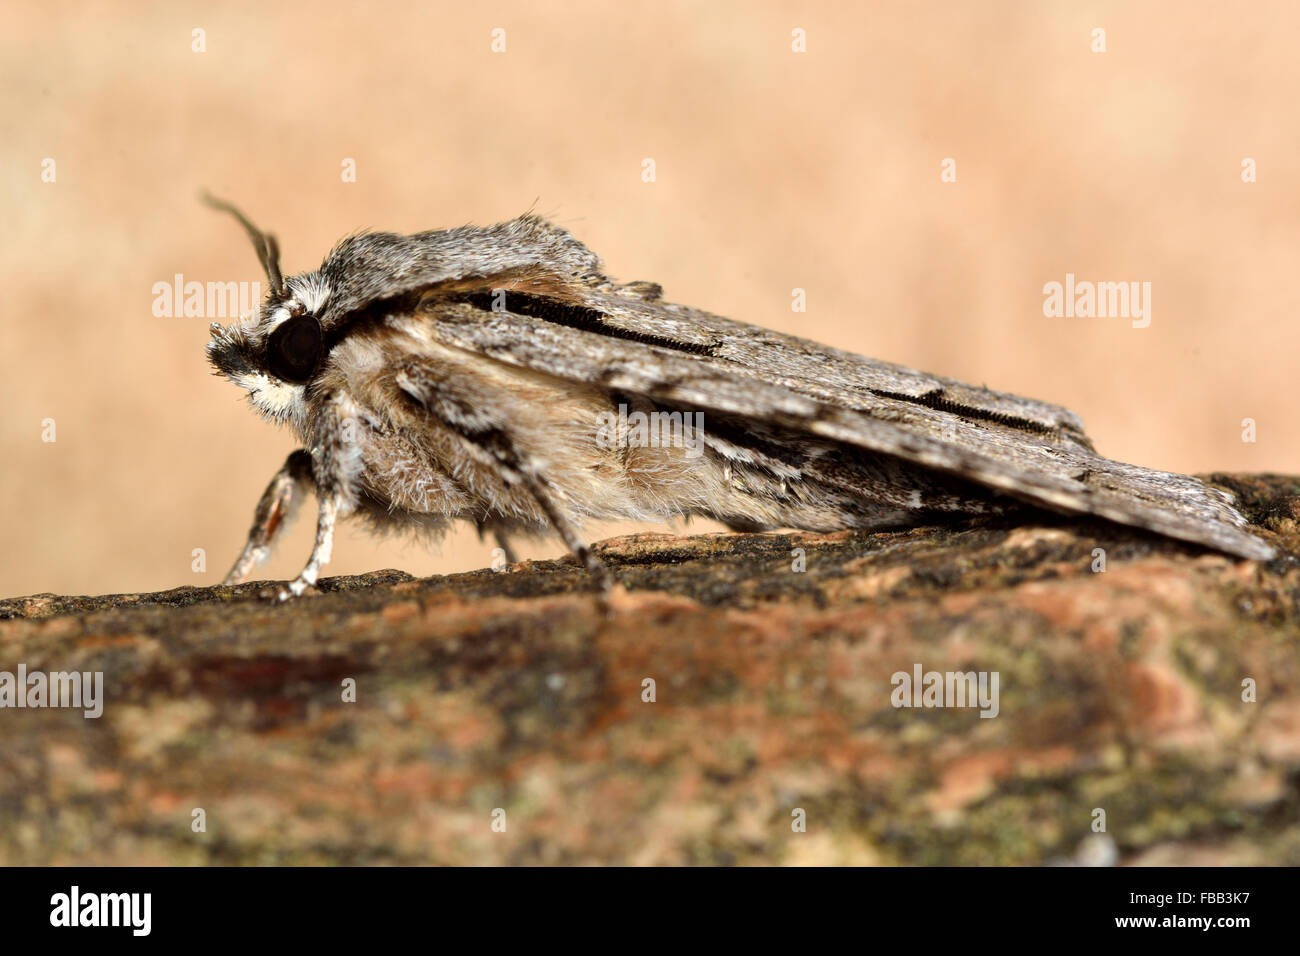 Grey dagger (Actronicta psi) moth. A moth in the family Noctuidae, at rest and shown in profile - Stock Image